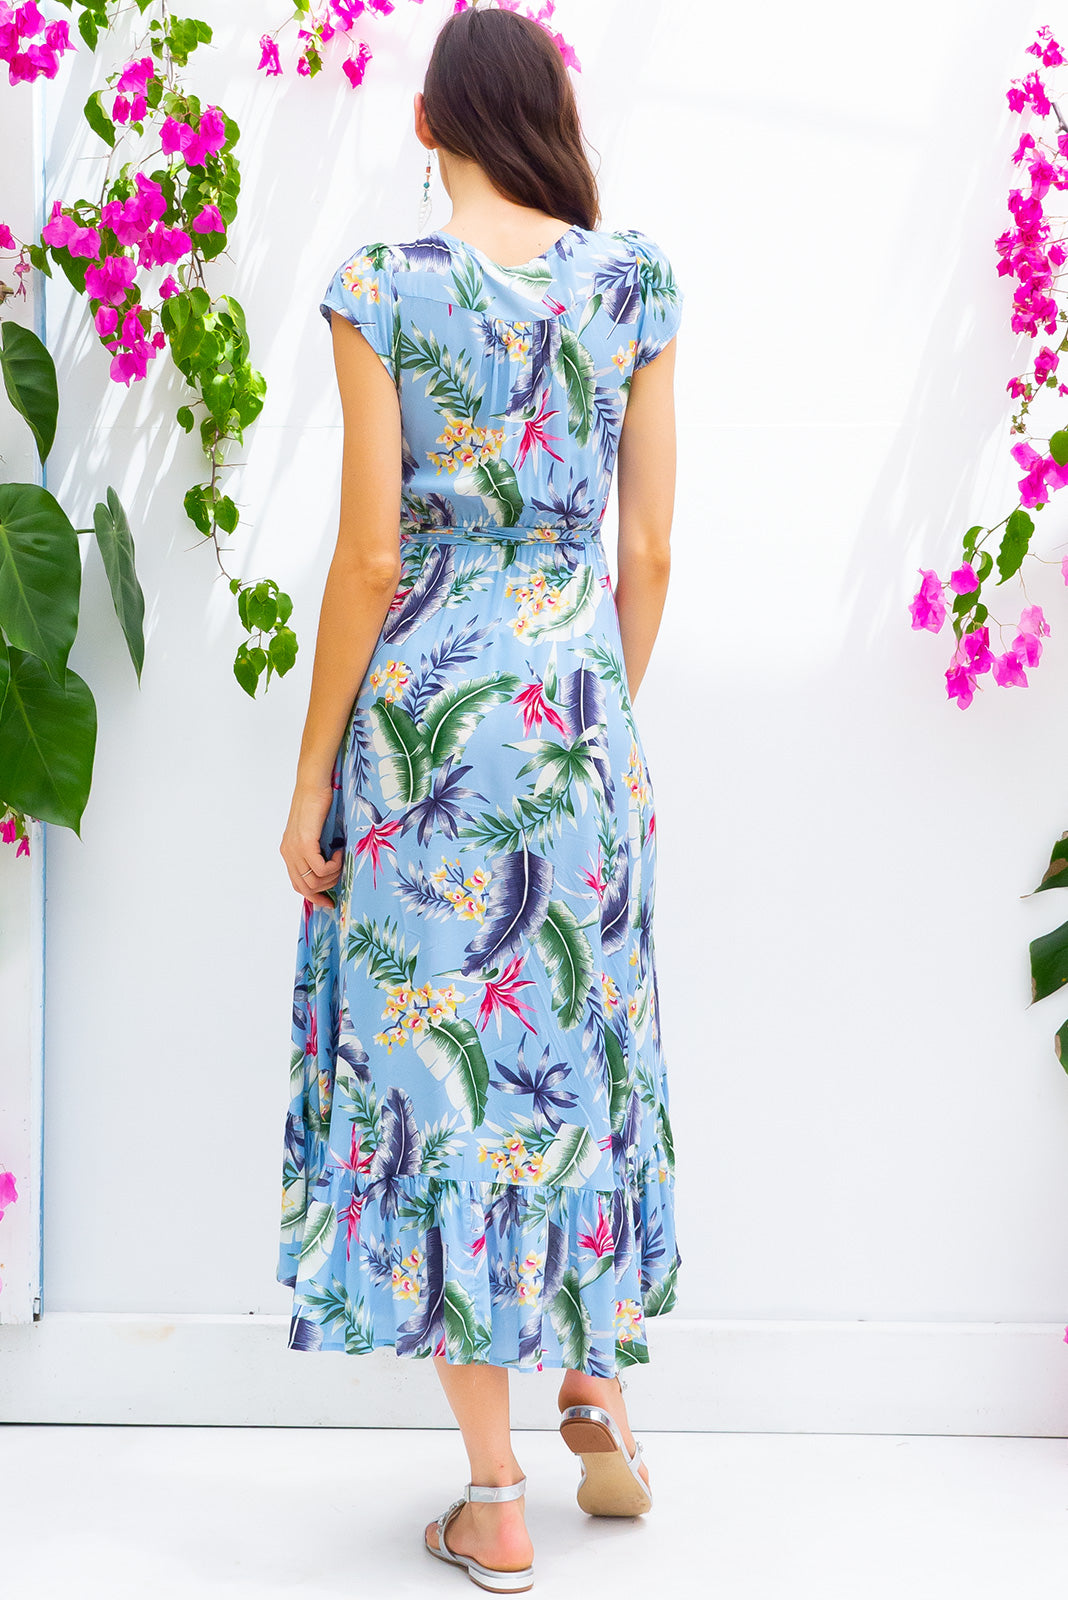 Symphony Tropical Skies Maxi Wrap Dress with a fitted bodice, cap sleeve and frill around the hem in a soft sky blue tropical floral print on soft rayon